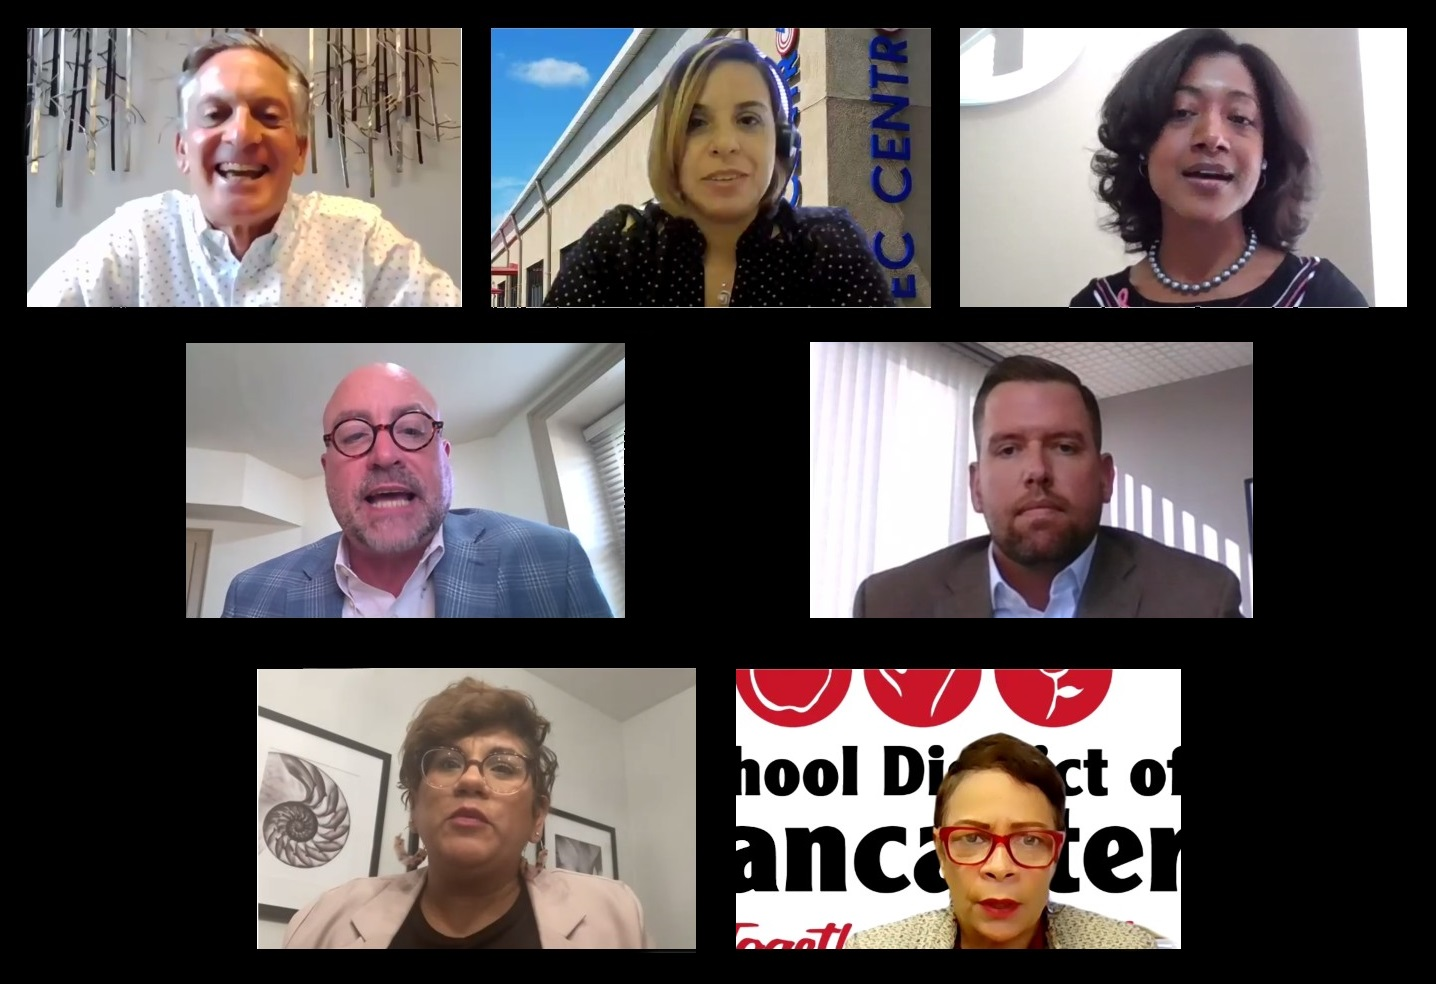 This montage shows participants in United Way of Lancaster County's online forum on workforce issues on Friday, Oct. 22, 2021. Top, from left: Tom Baldrige, Marlyn Barbosa, Selena Coachman. Middle, from left: Scott Fiore, Brian Lois. Bottom, from left: Vanessa Philbert, Damaris Rau. (Source: United Way of Lancaster County)